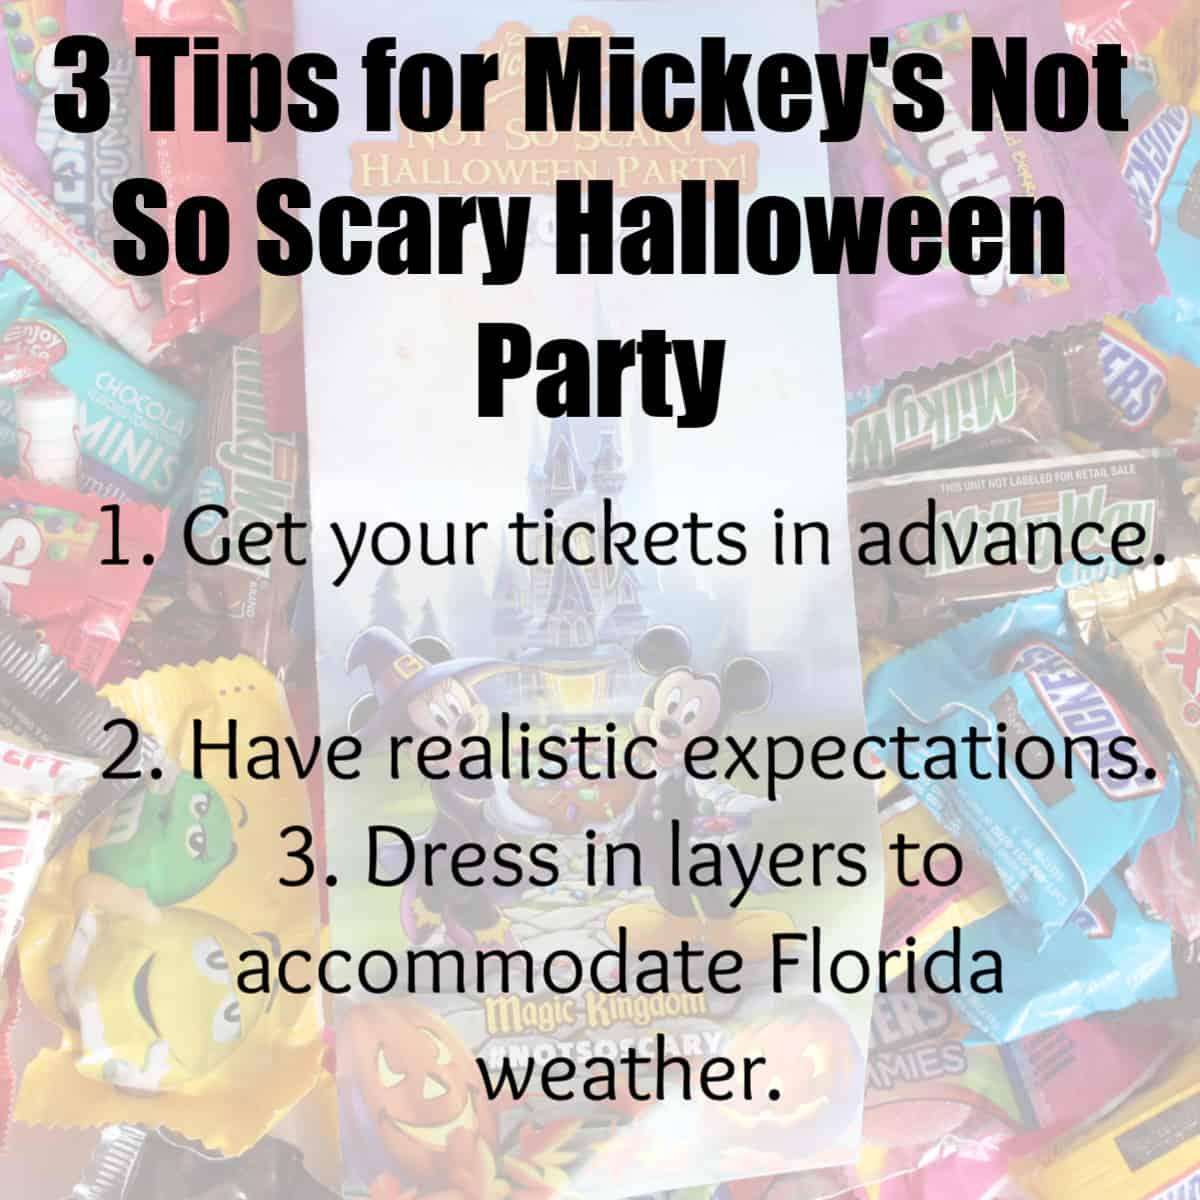 3 Tips for Mickey's Not So Scary Halloween Party